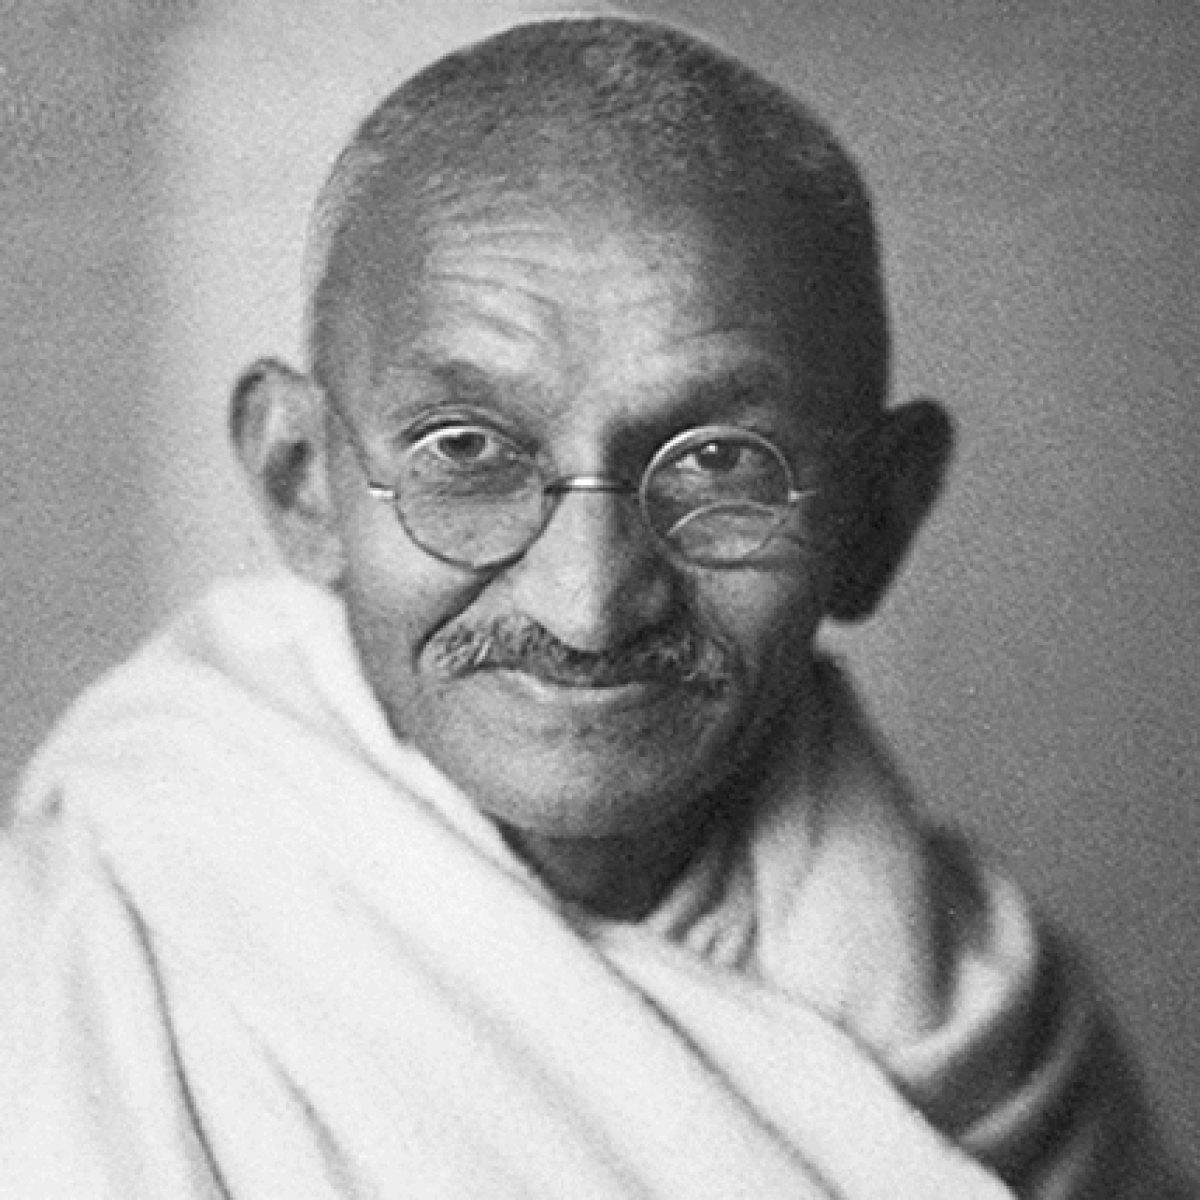 Gandhi being insulted in this prickly world